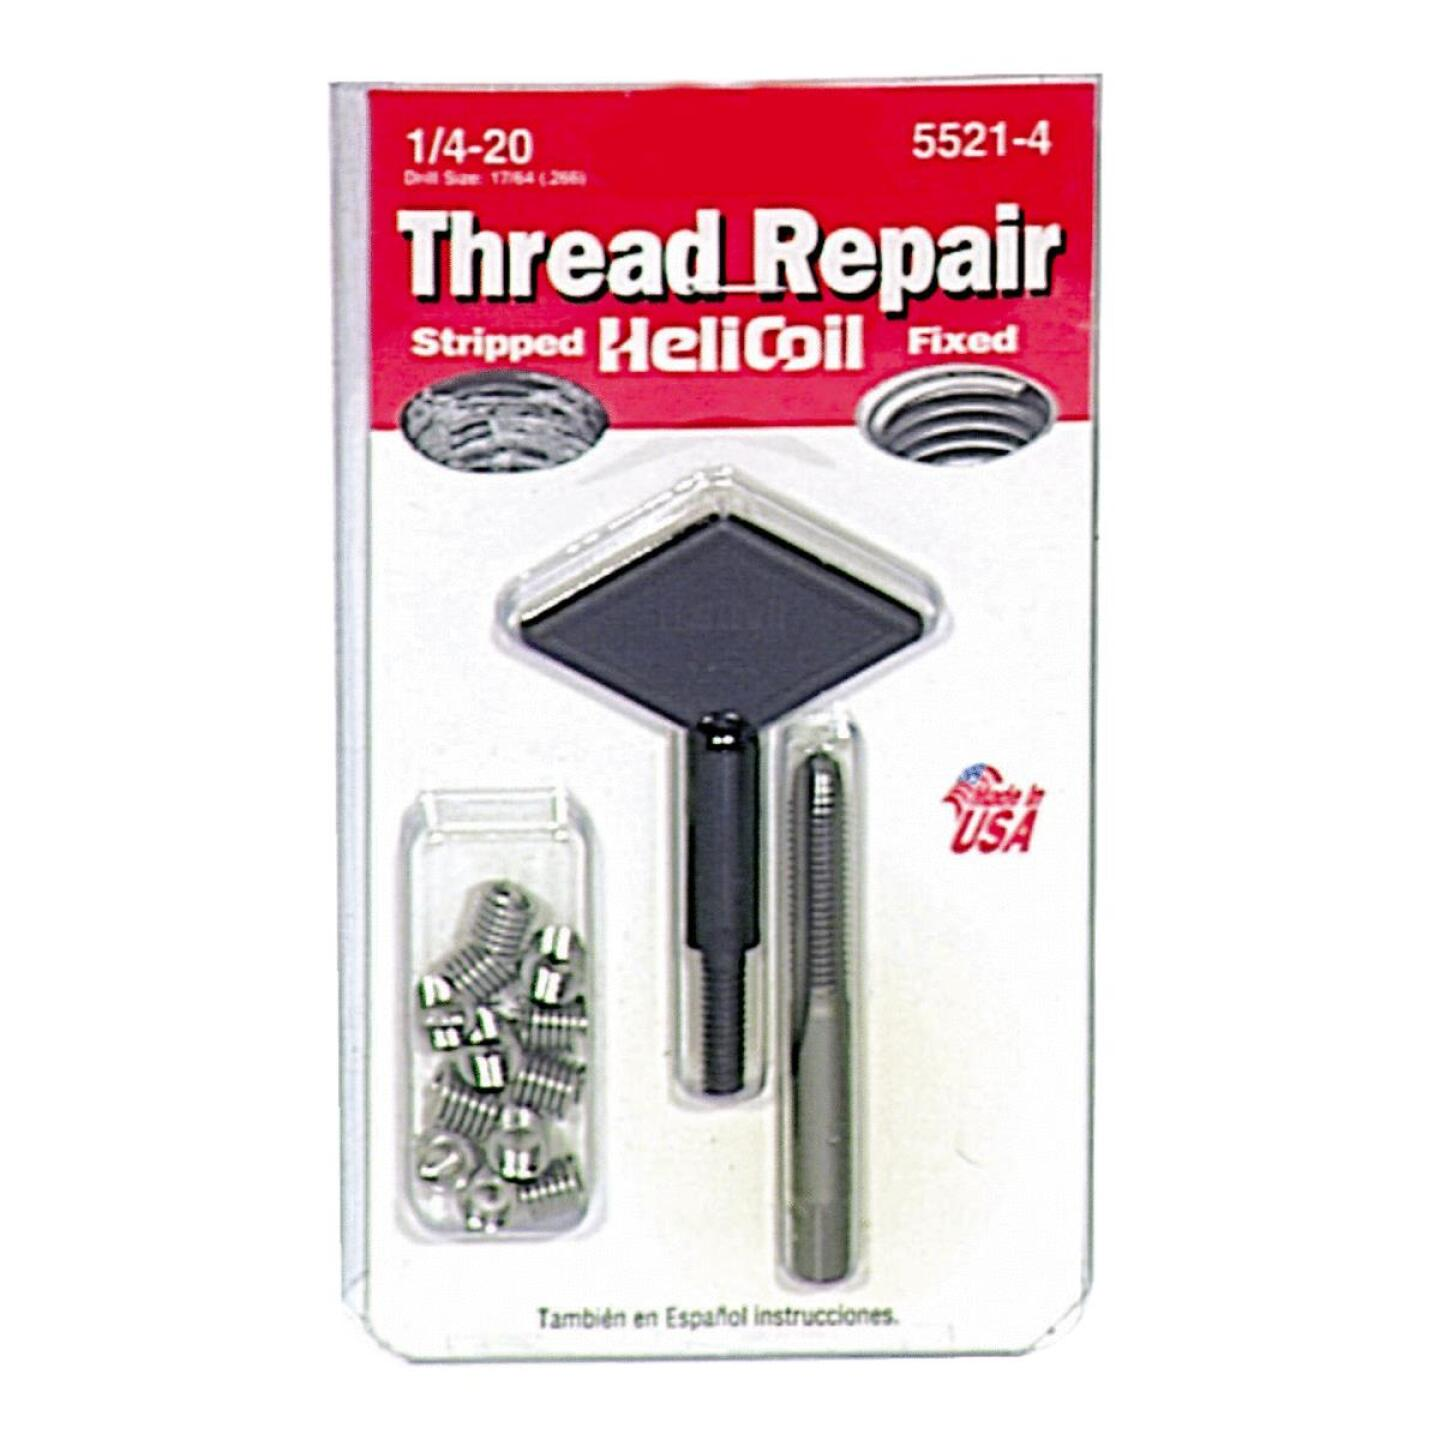 HeliCoil 1/4-20 Stainless Steel Thread Repair Kit Image 1